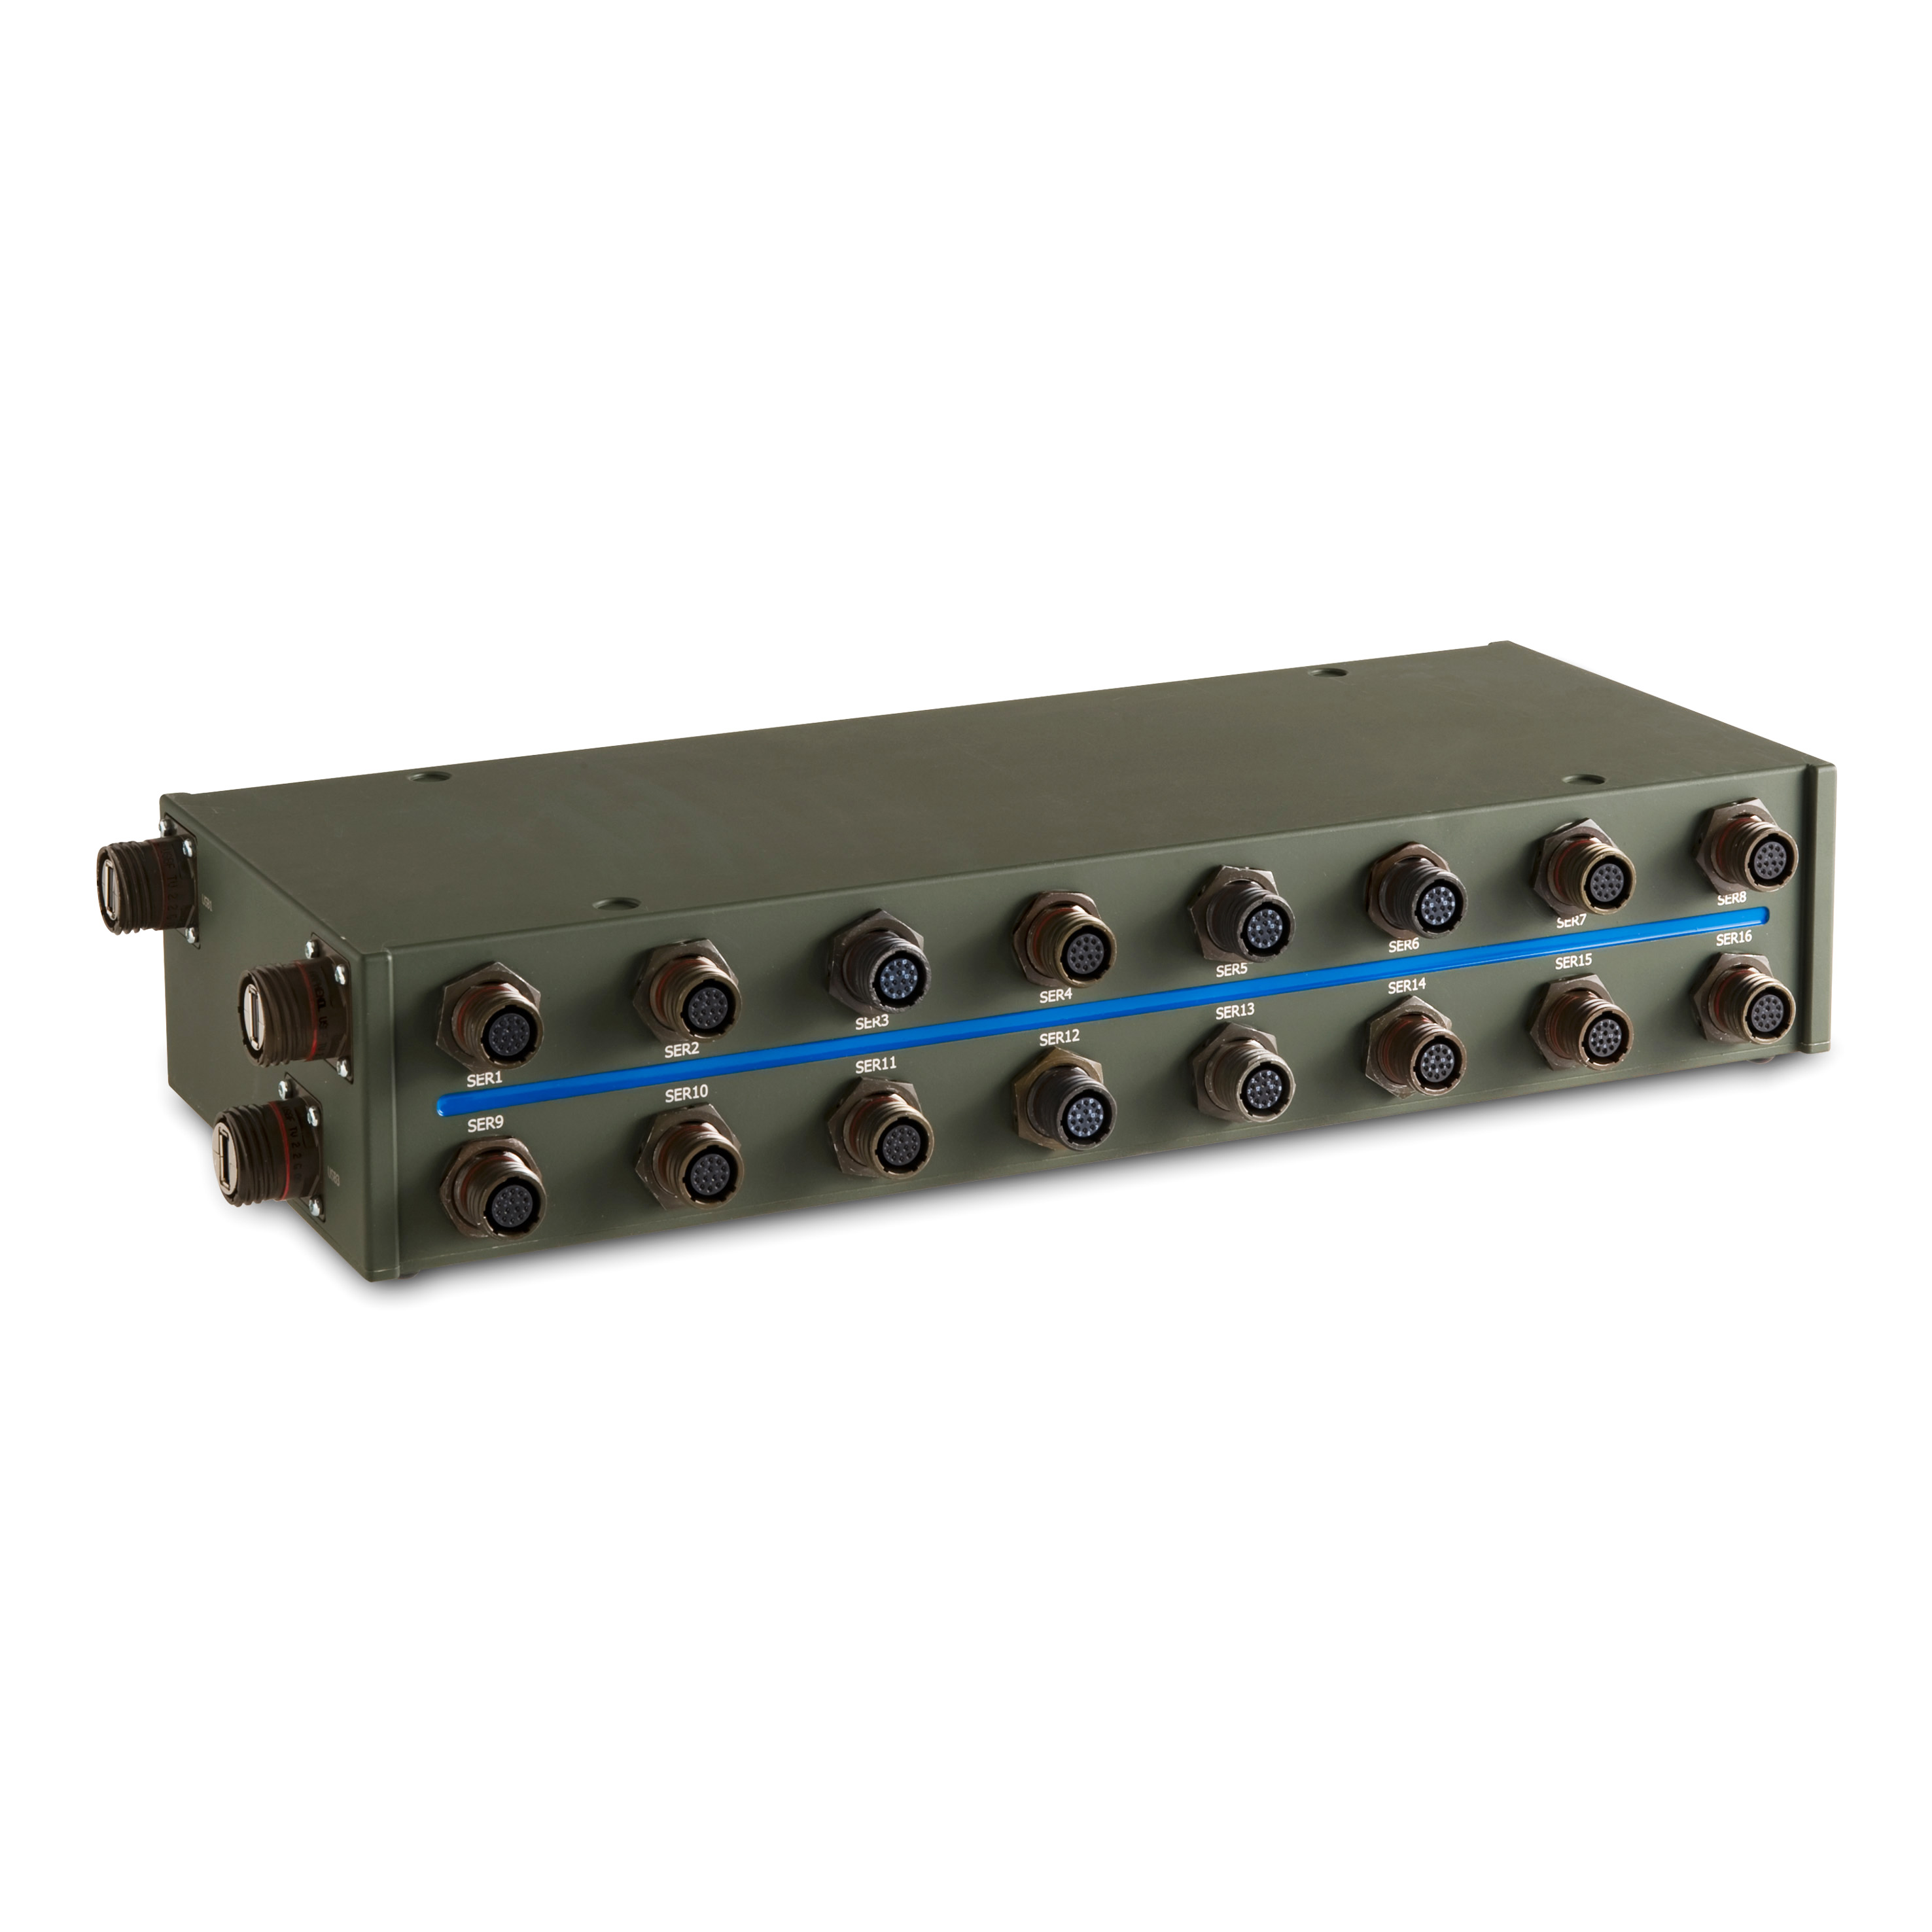 CIU - Core Interface Unit